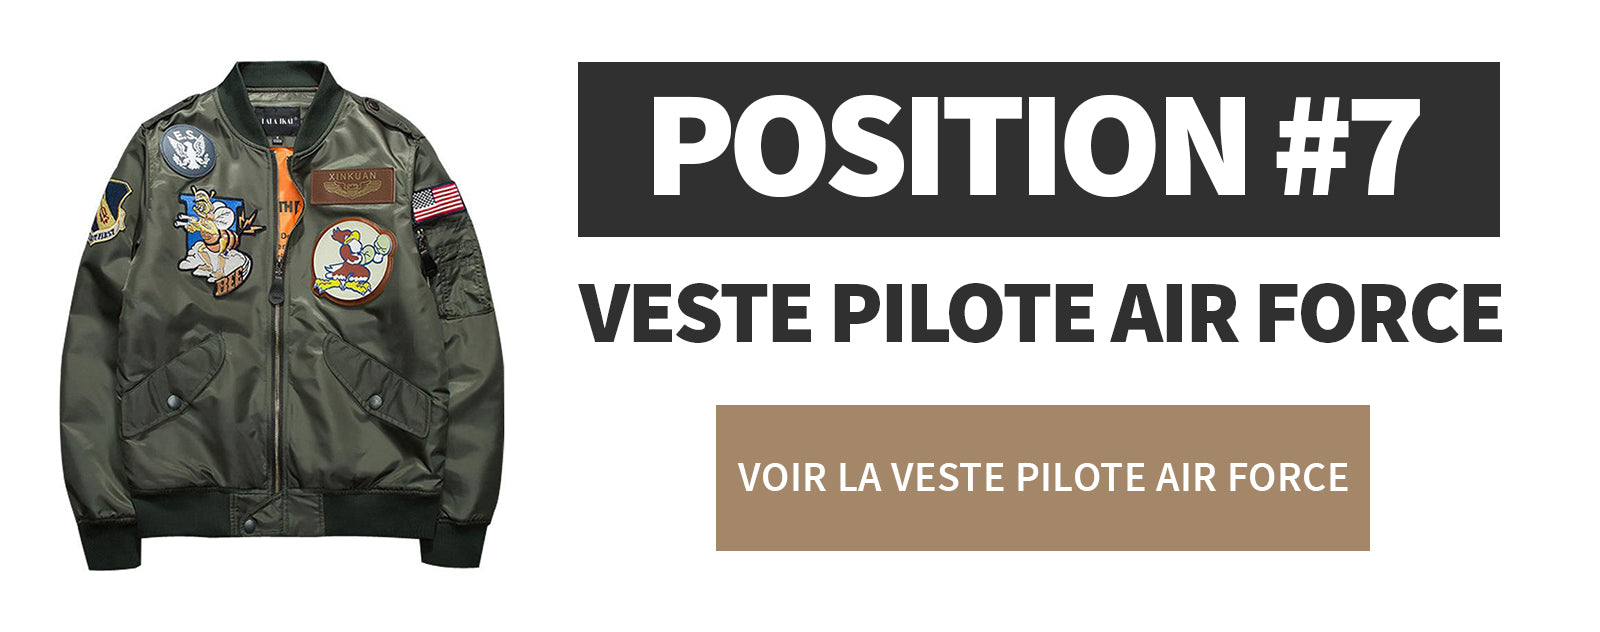 Veste Pilote de l'air force